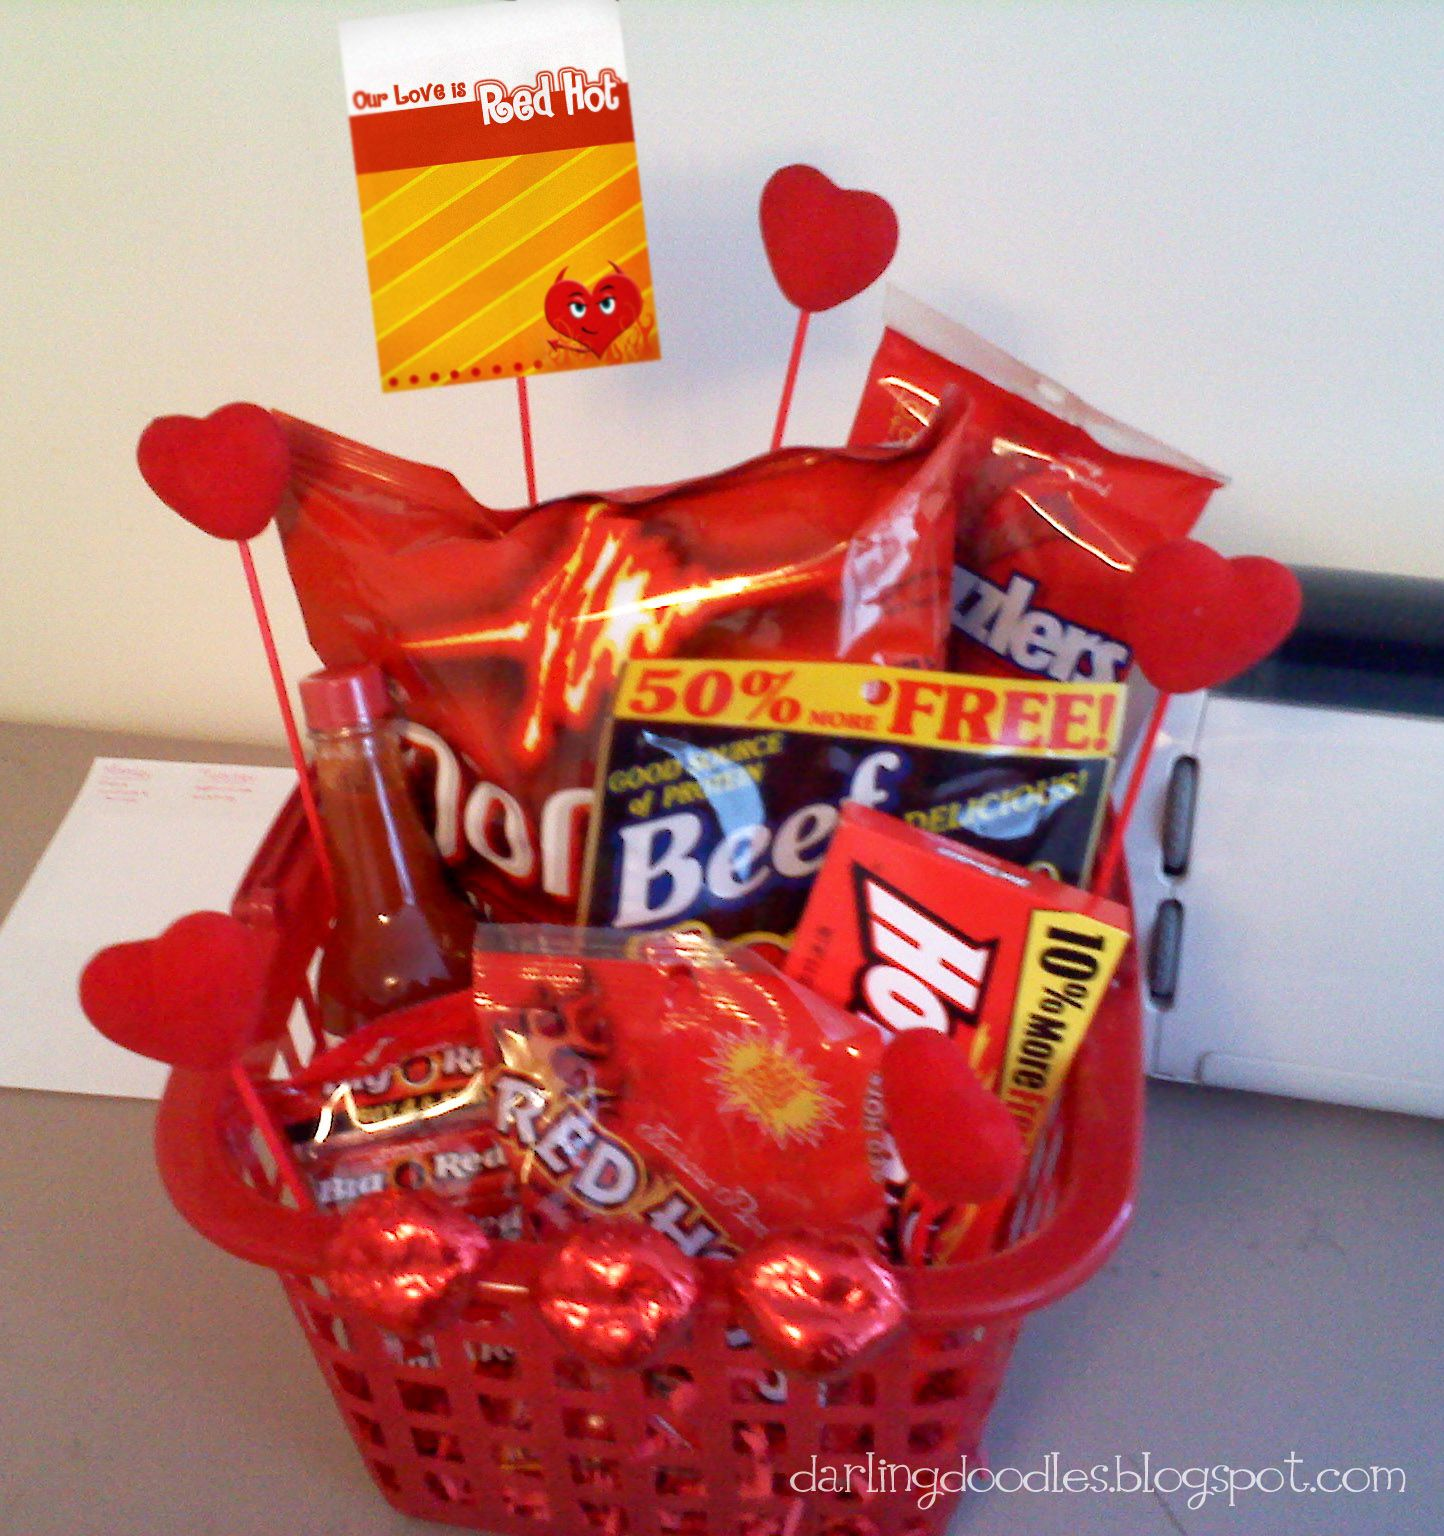 The red basket is from the dollar store as are the hearts on the